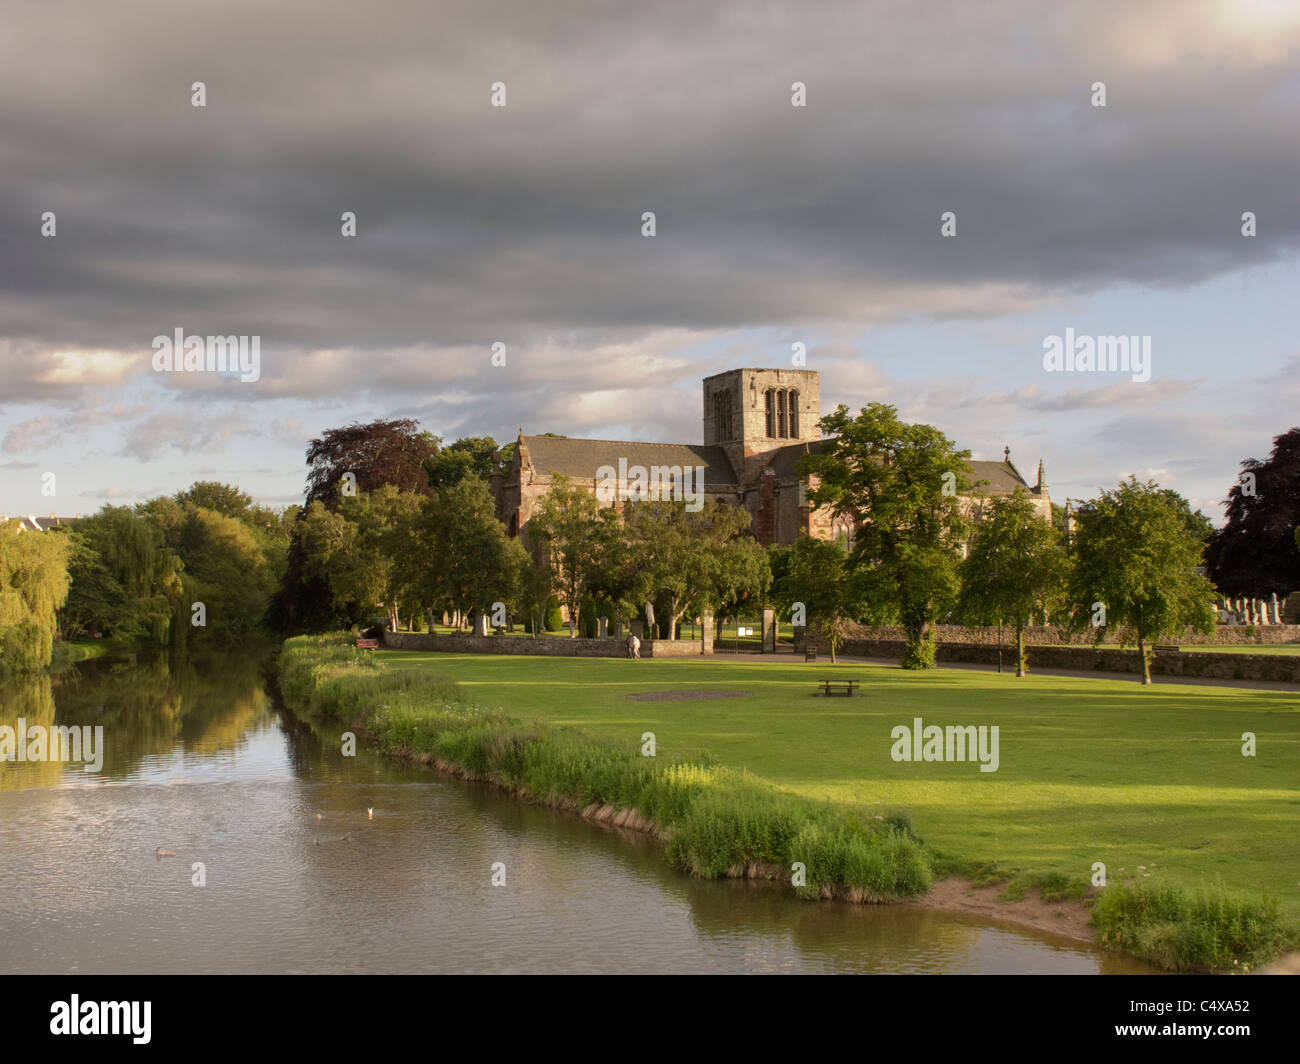 St Mary's Collegiate Church viewed across the River Tyne in the historic town of Haddington, East Lothian, Scotland - Stock Image